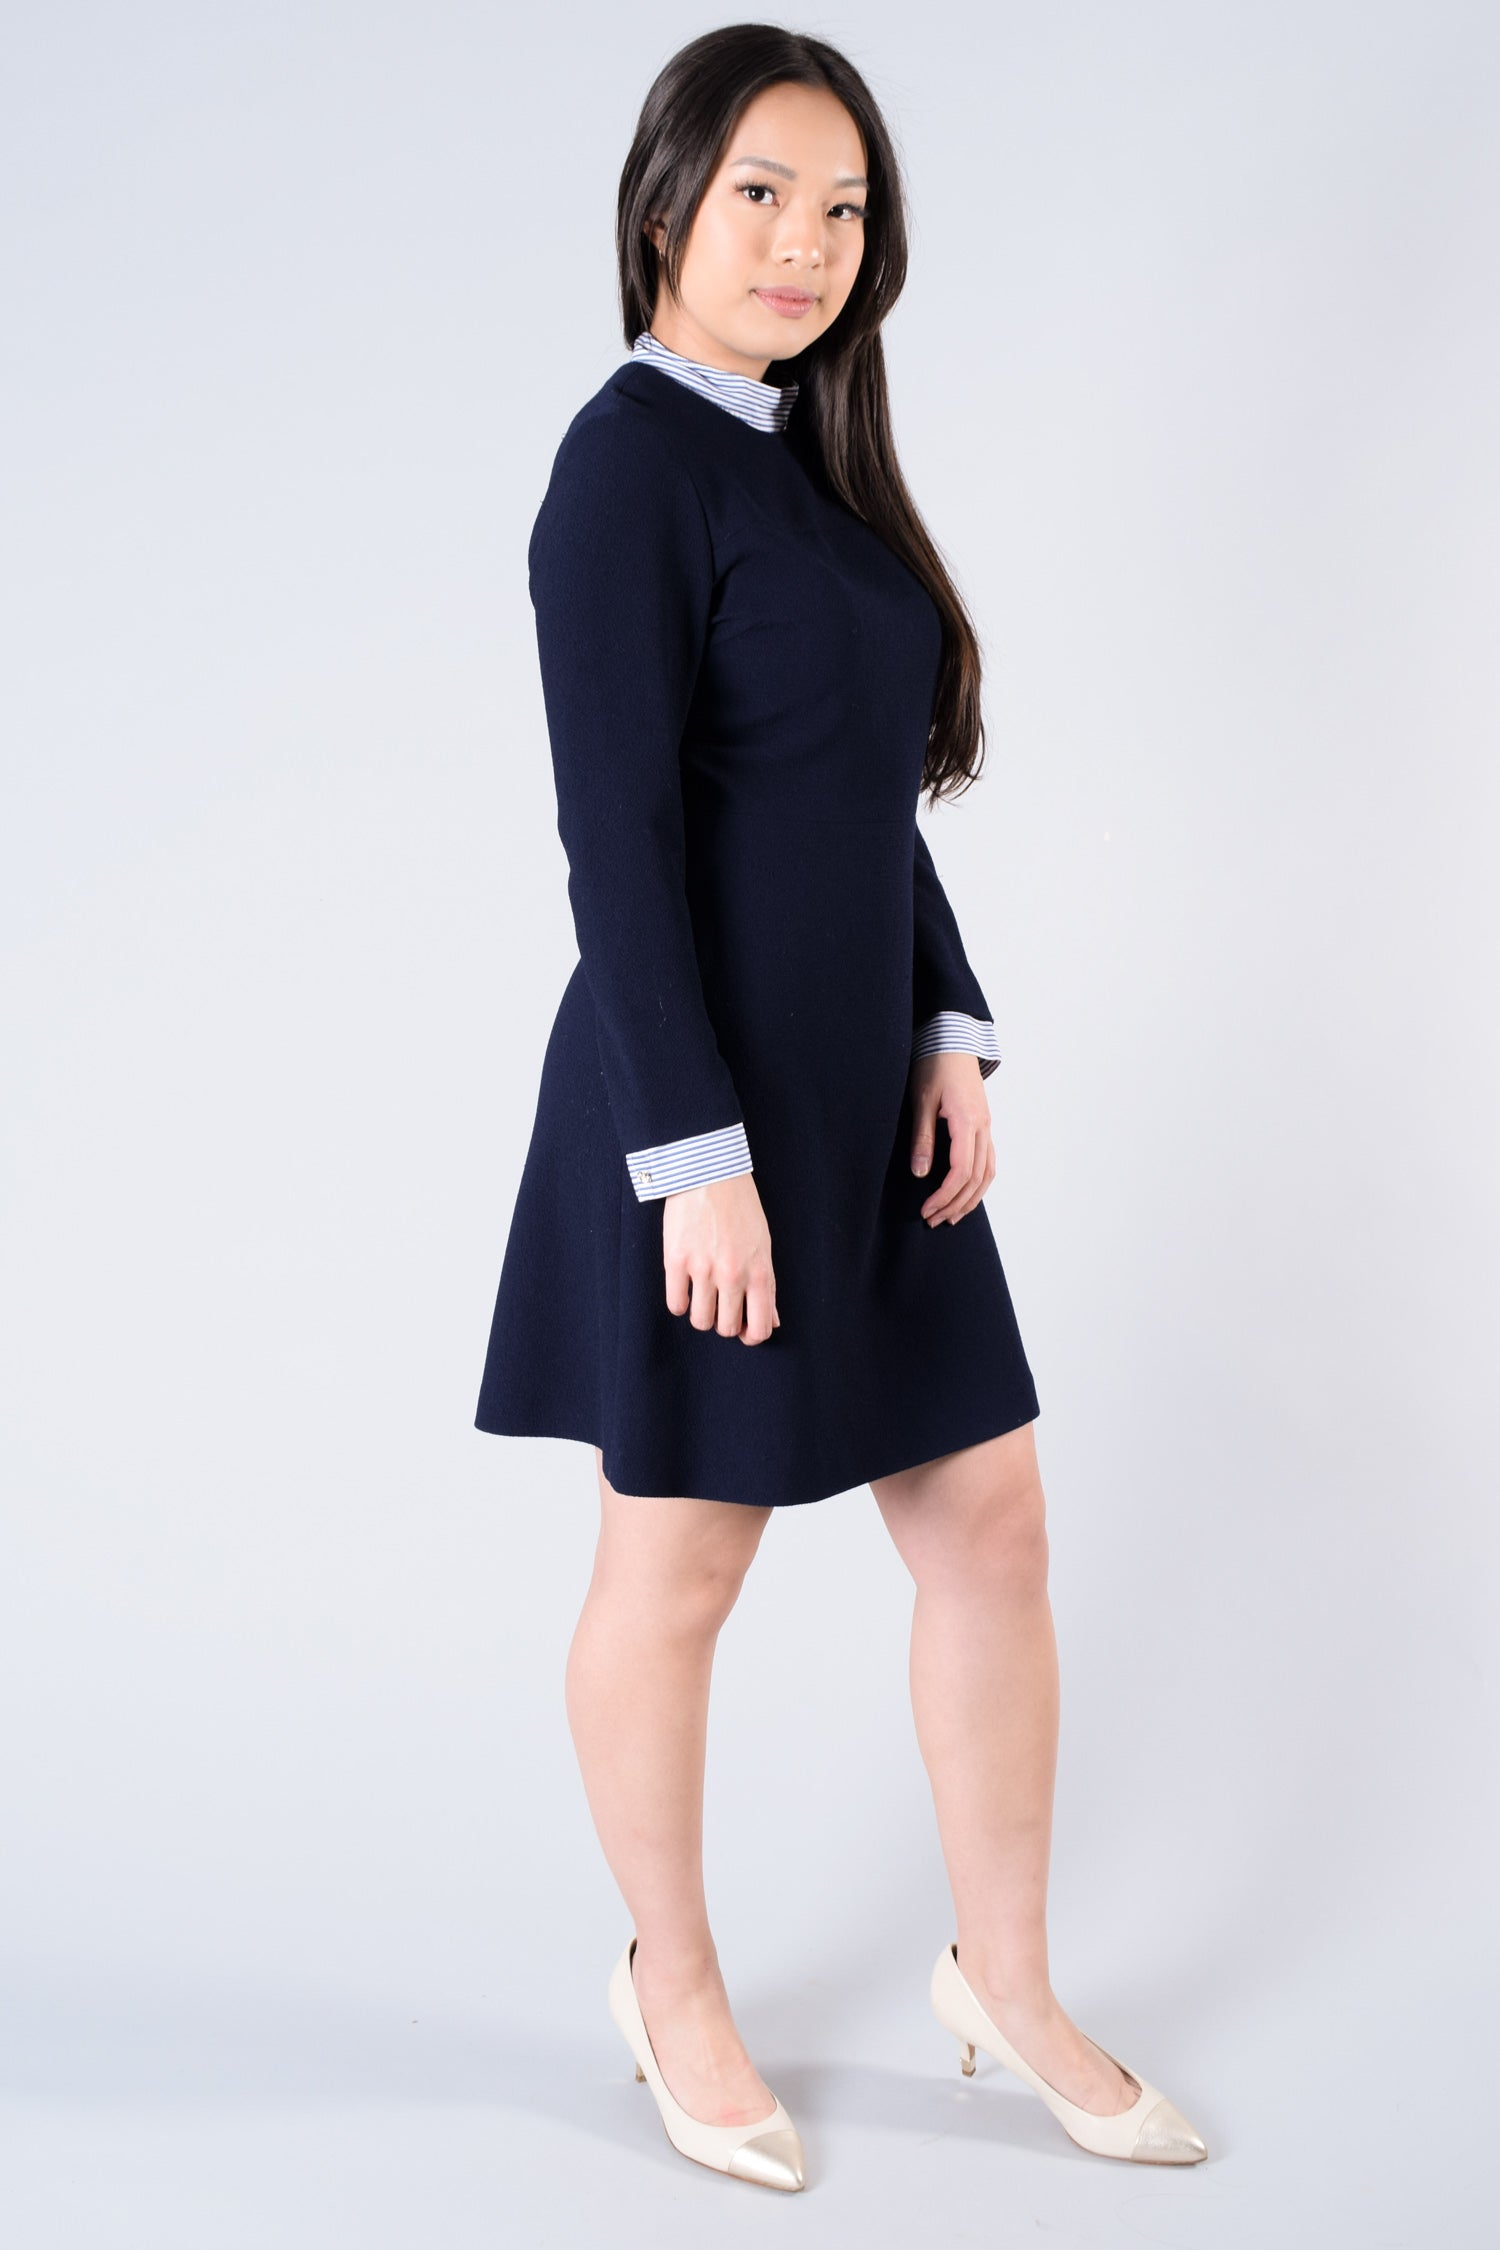 Sandro Navy L/S Dress w/ Striped Cuffs & Collar Size 2